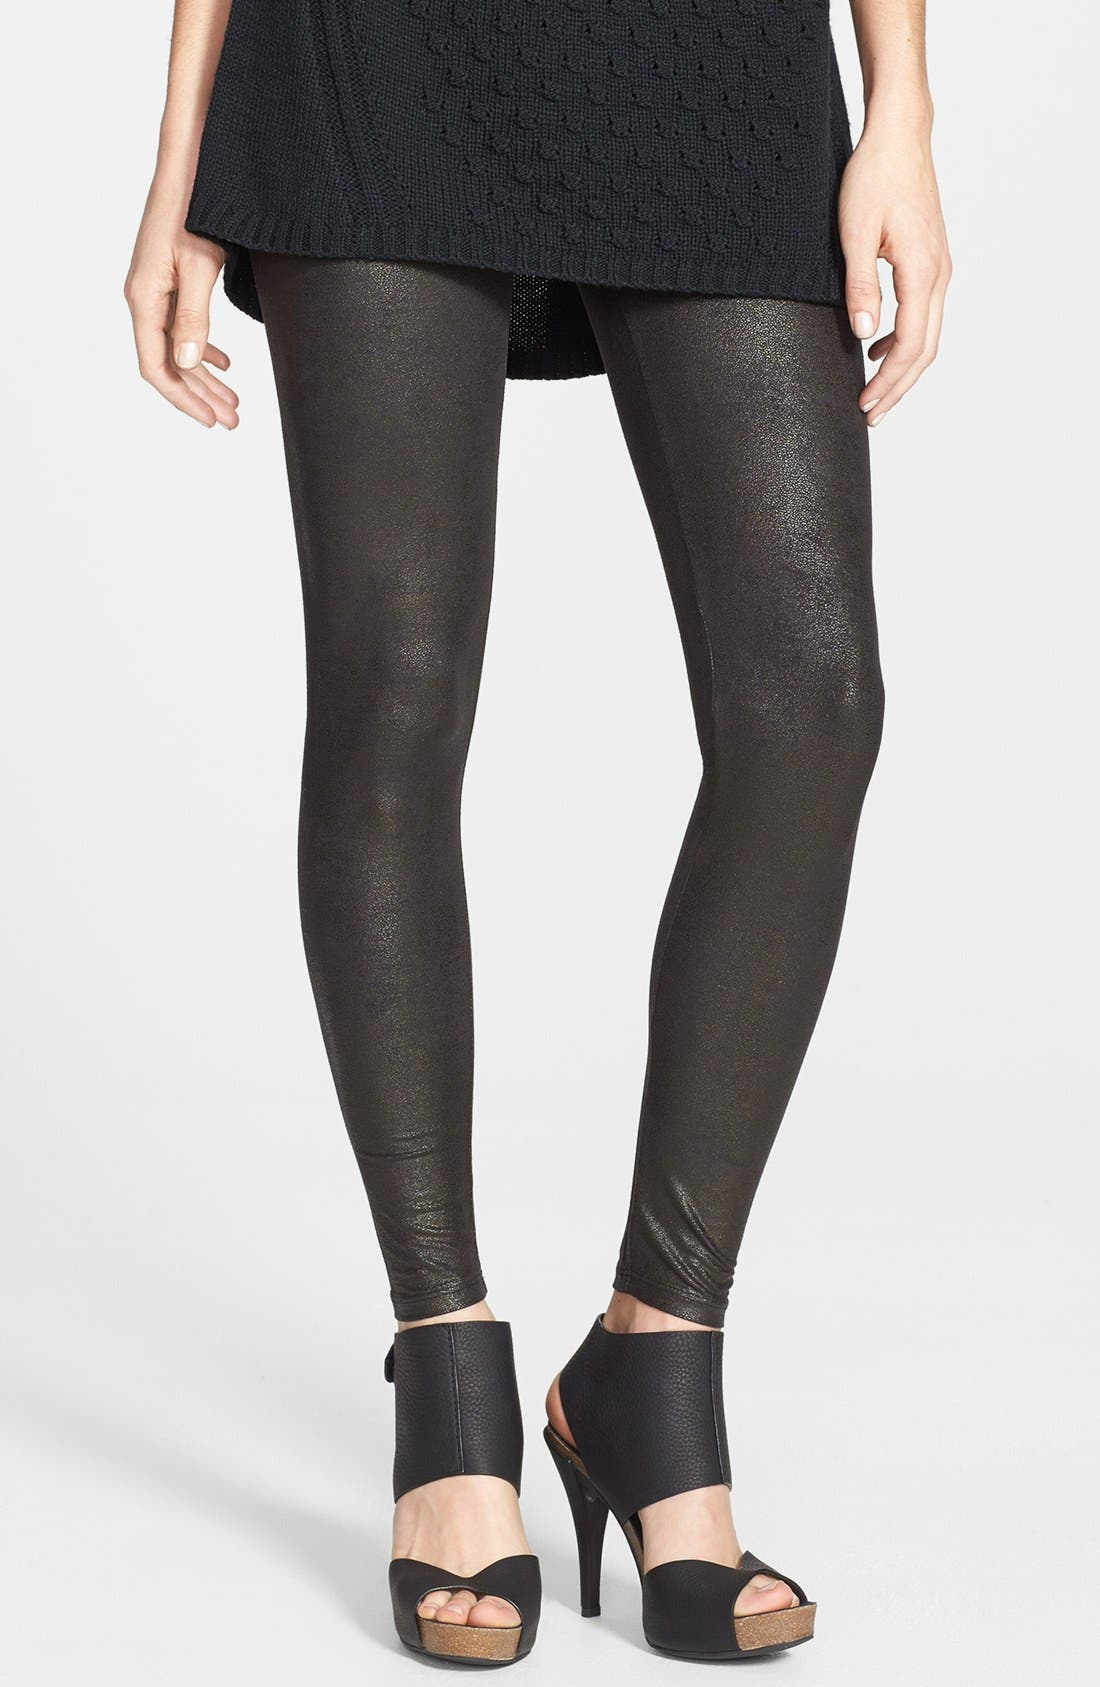 Main Image - Yummie by Heather Thomson Faux Leather Shaper Leggings